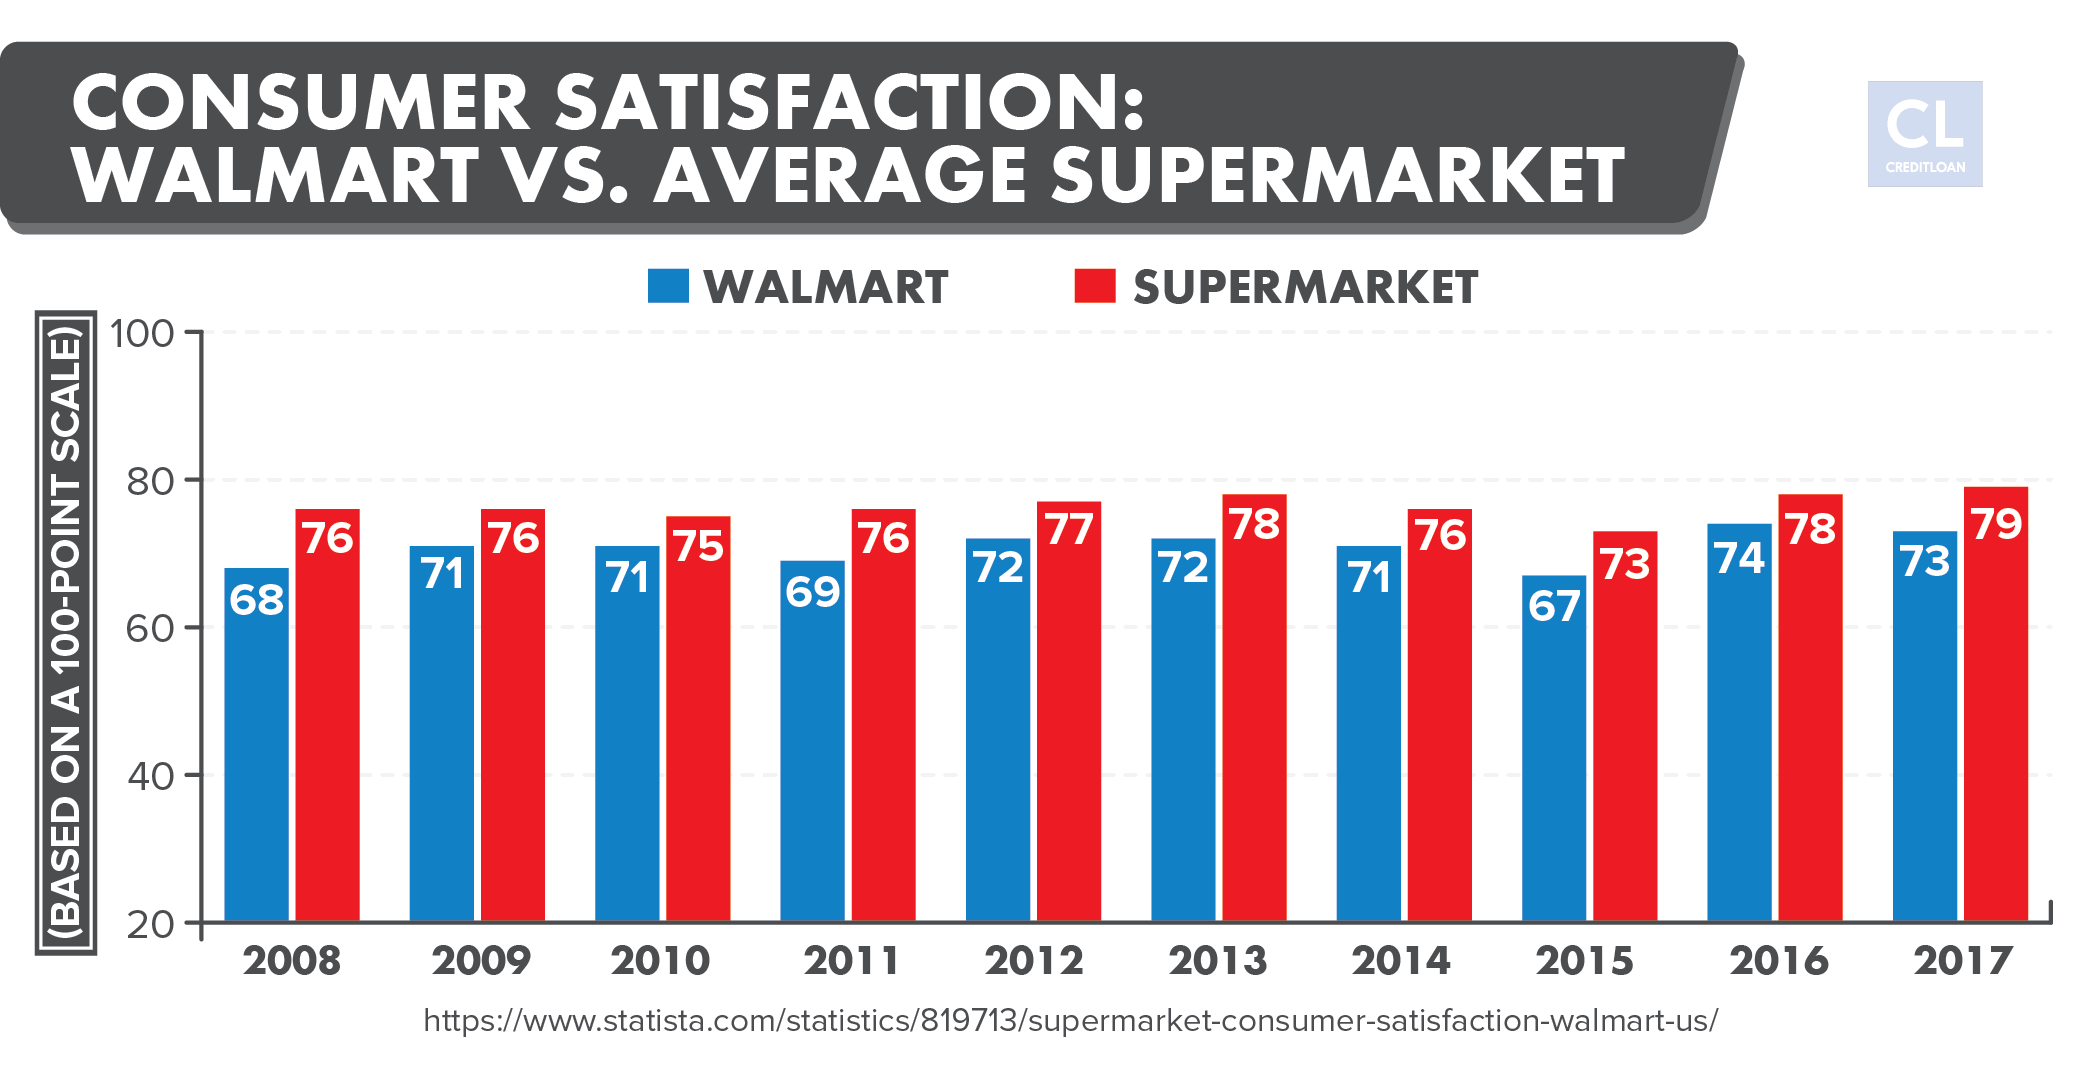 Walmart versus. Average Supermarket Customer Satisfaction 2008-2017